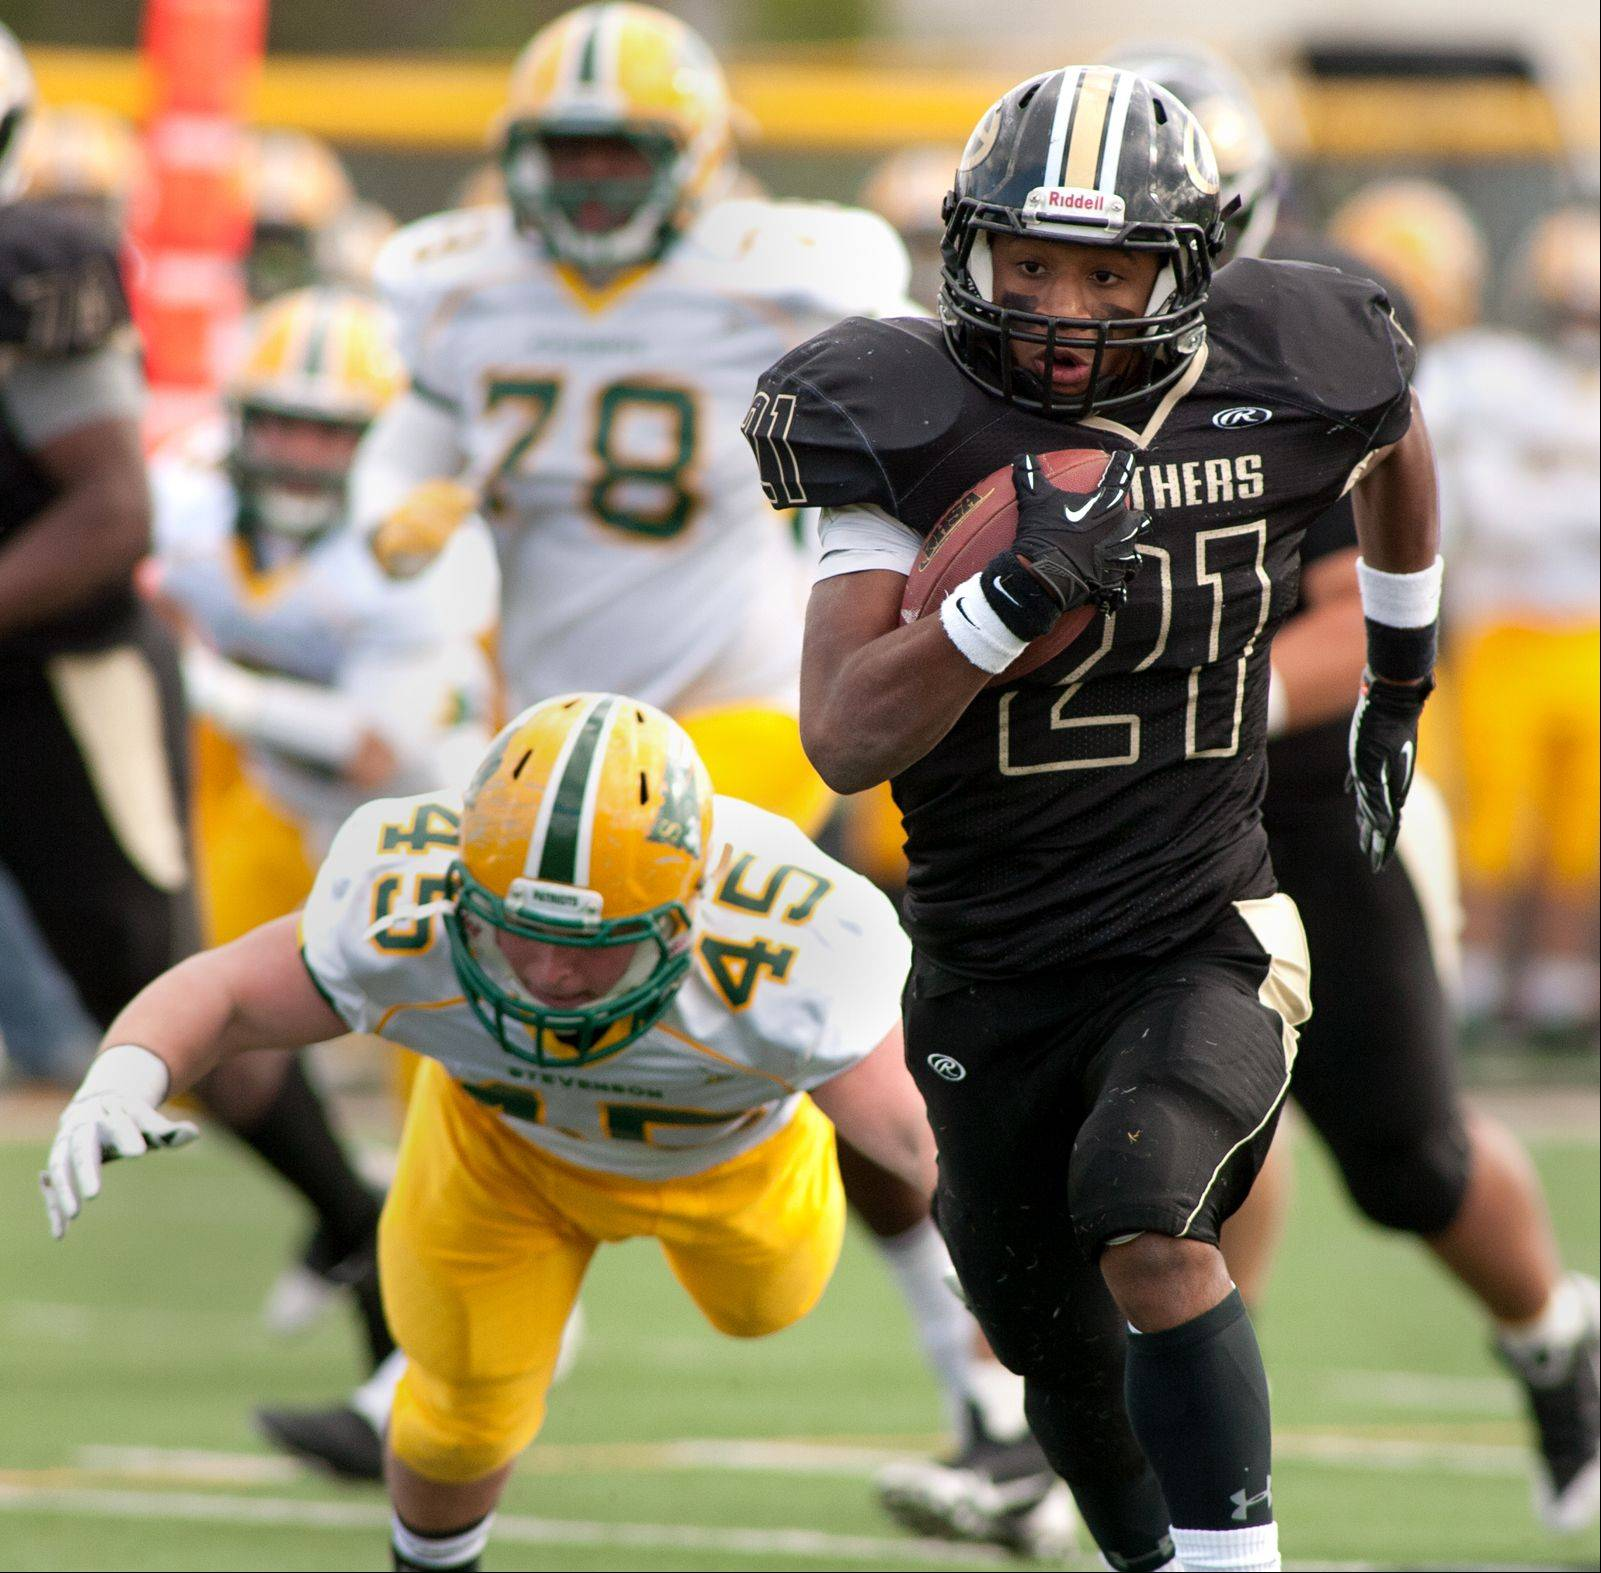 Glenbard North's Justin Jackson eyes the end zone on a 47-yard touchdown run.